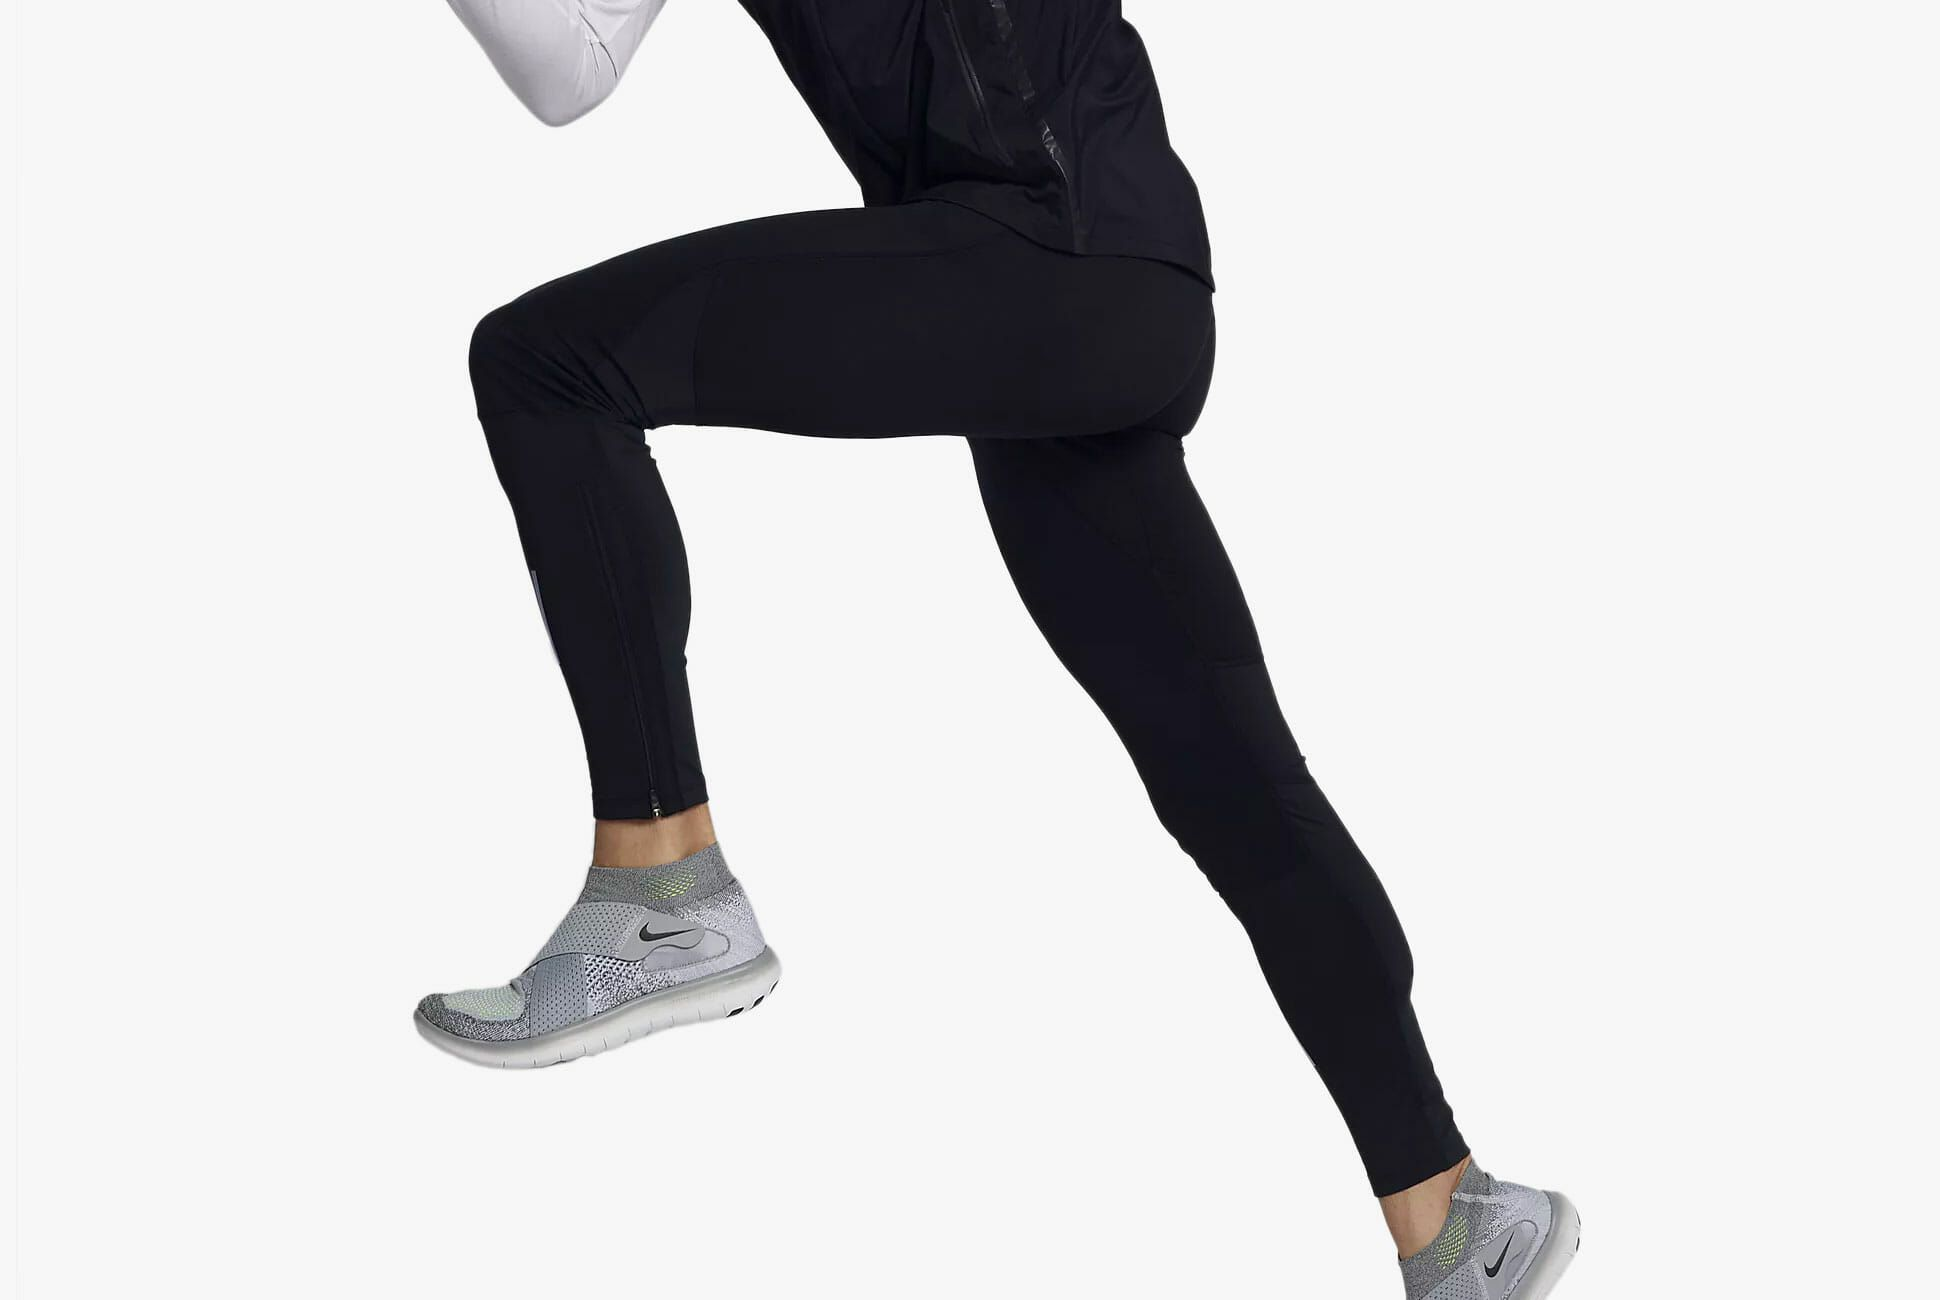 The 5 Best Winter Running Tights of